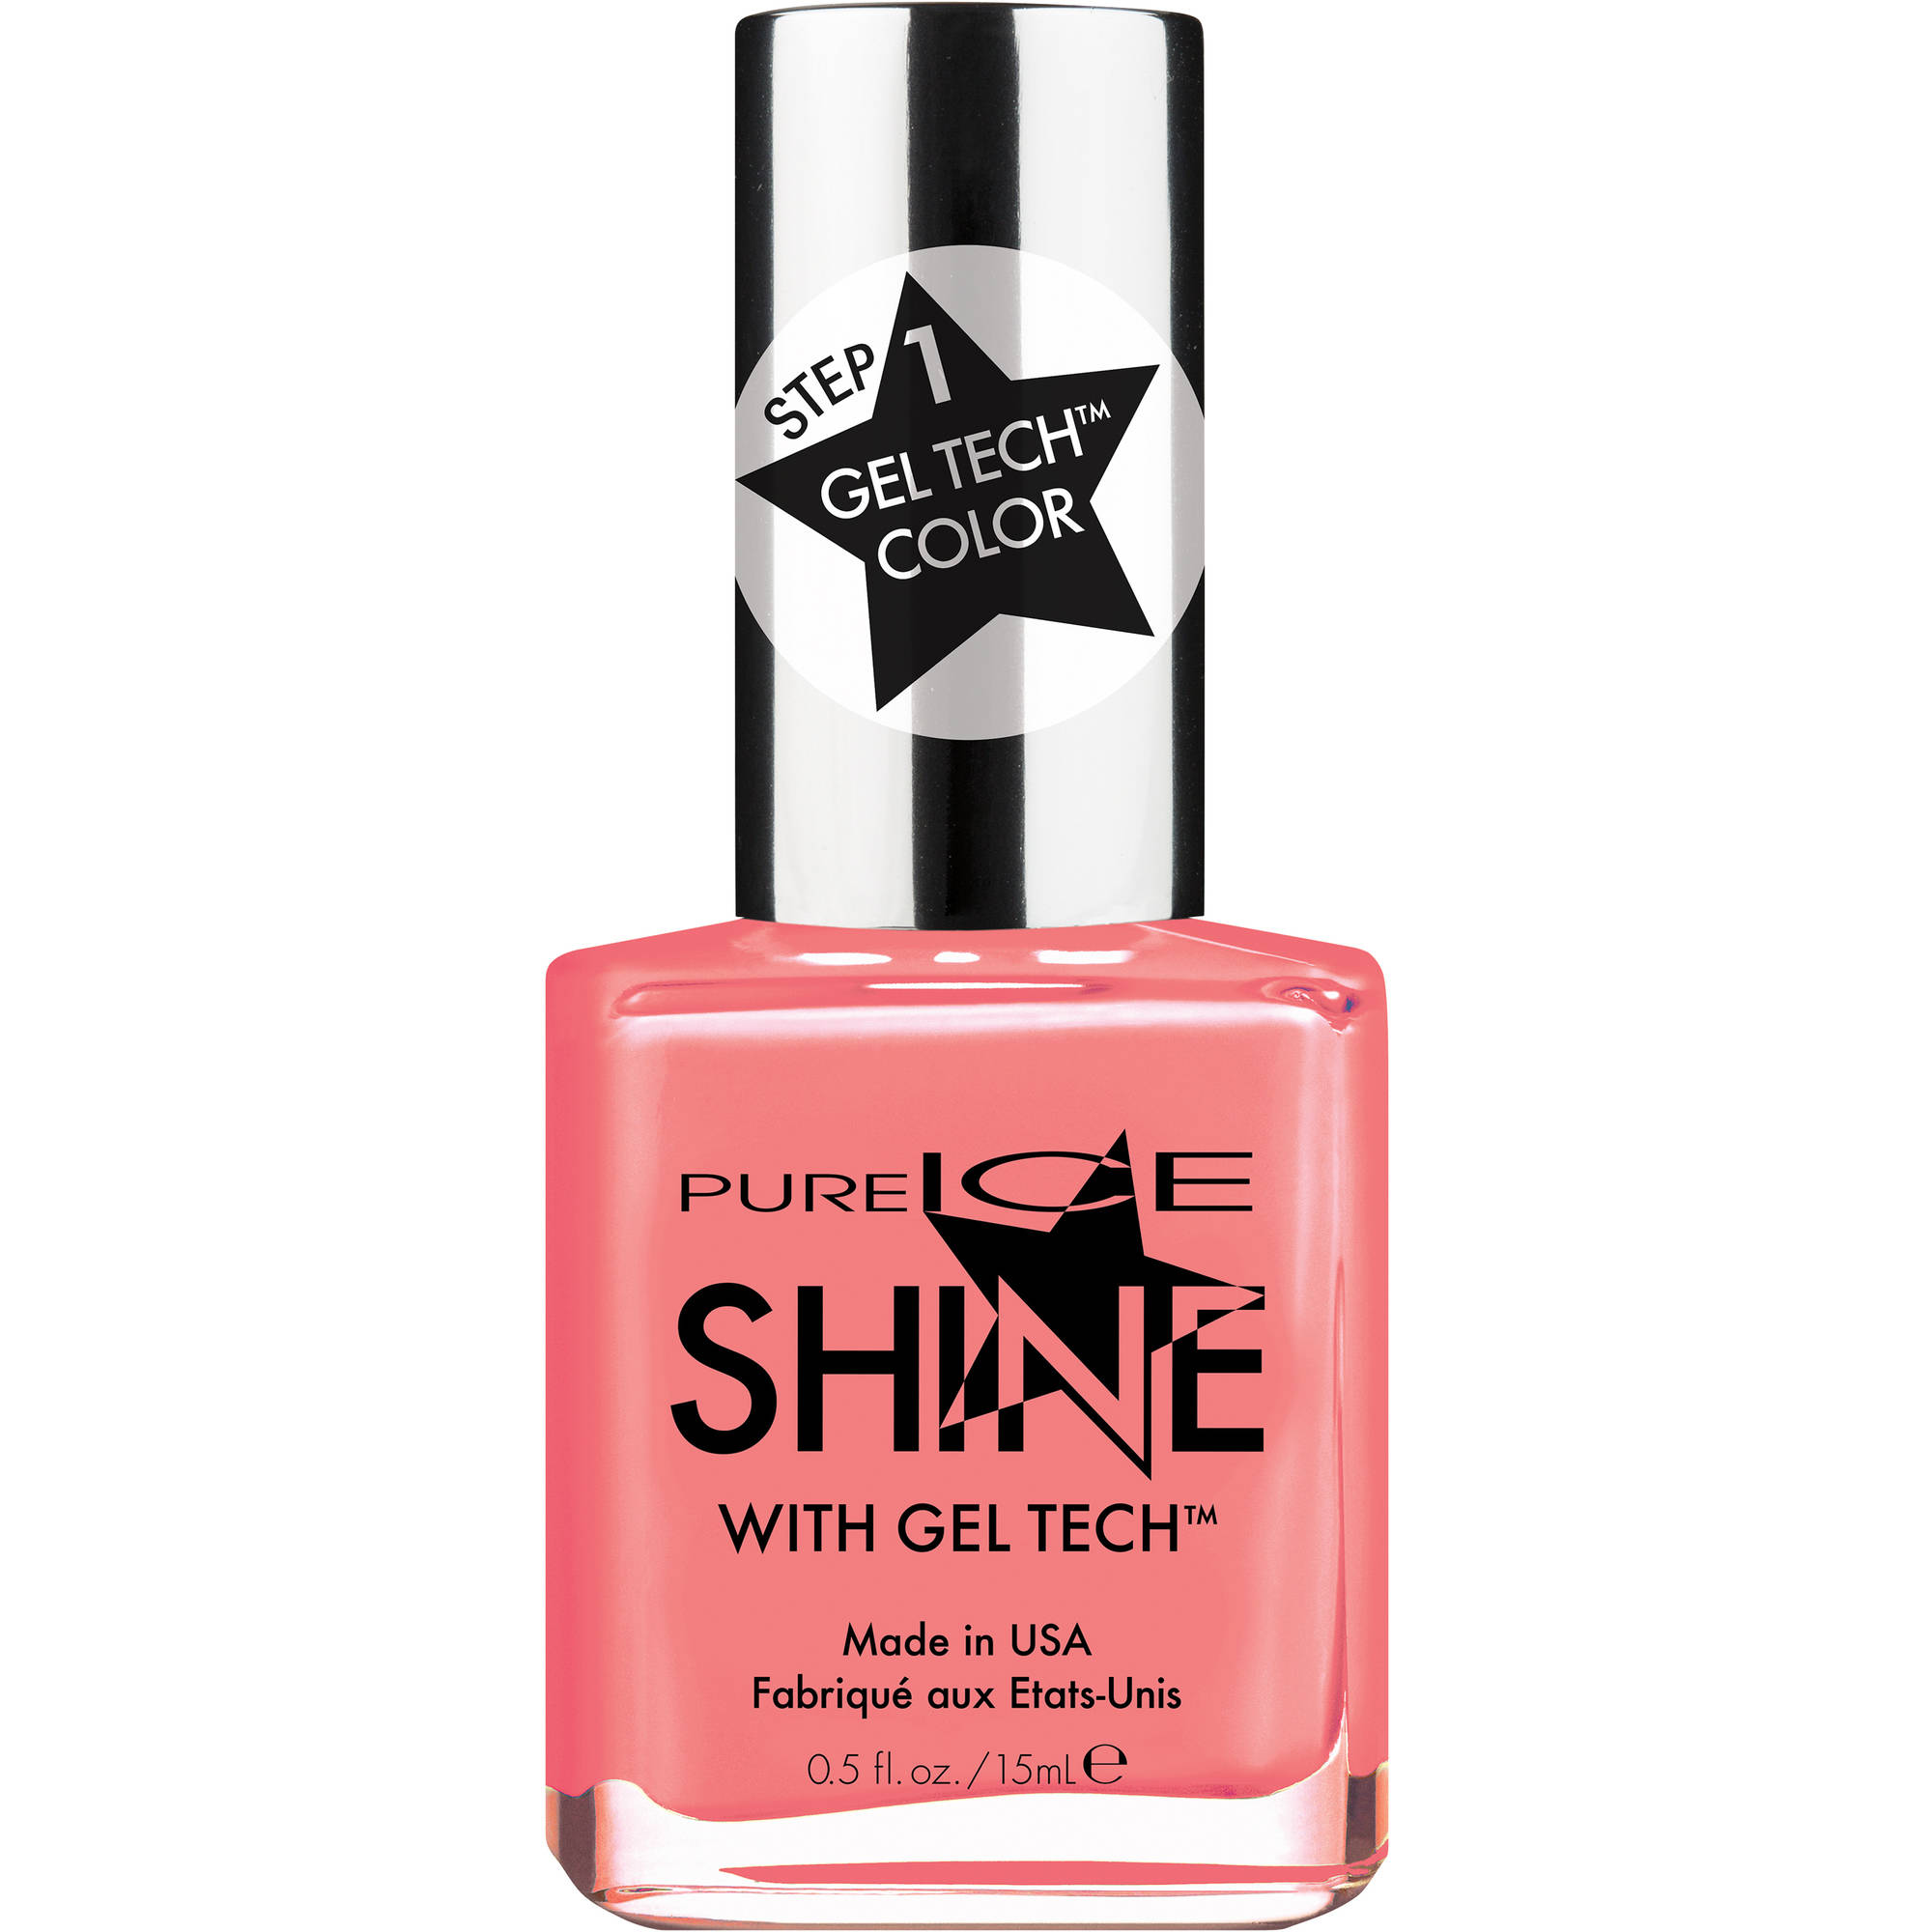 Pure Ice Shine with Gel Tech Nail Polish, My Only Sunshine, 0.5 fl oz